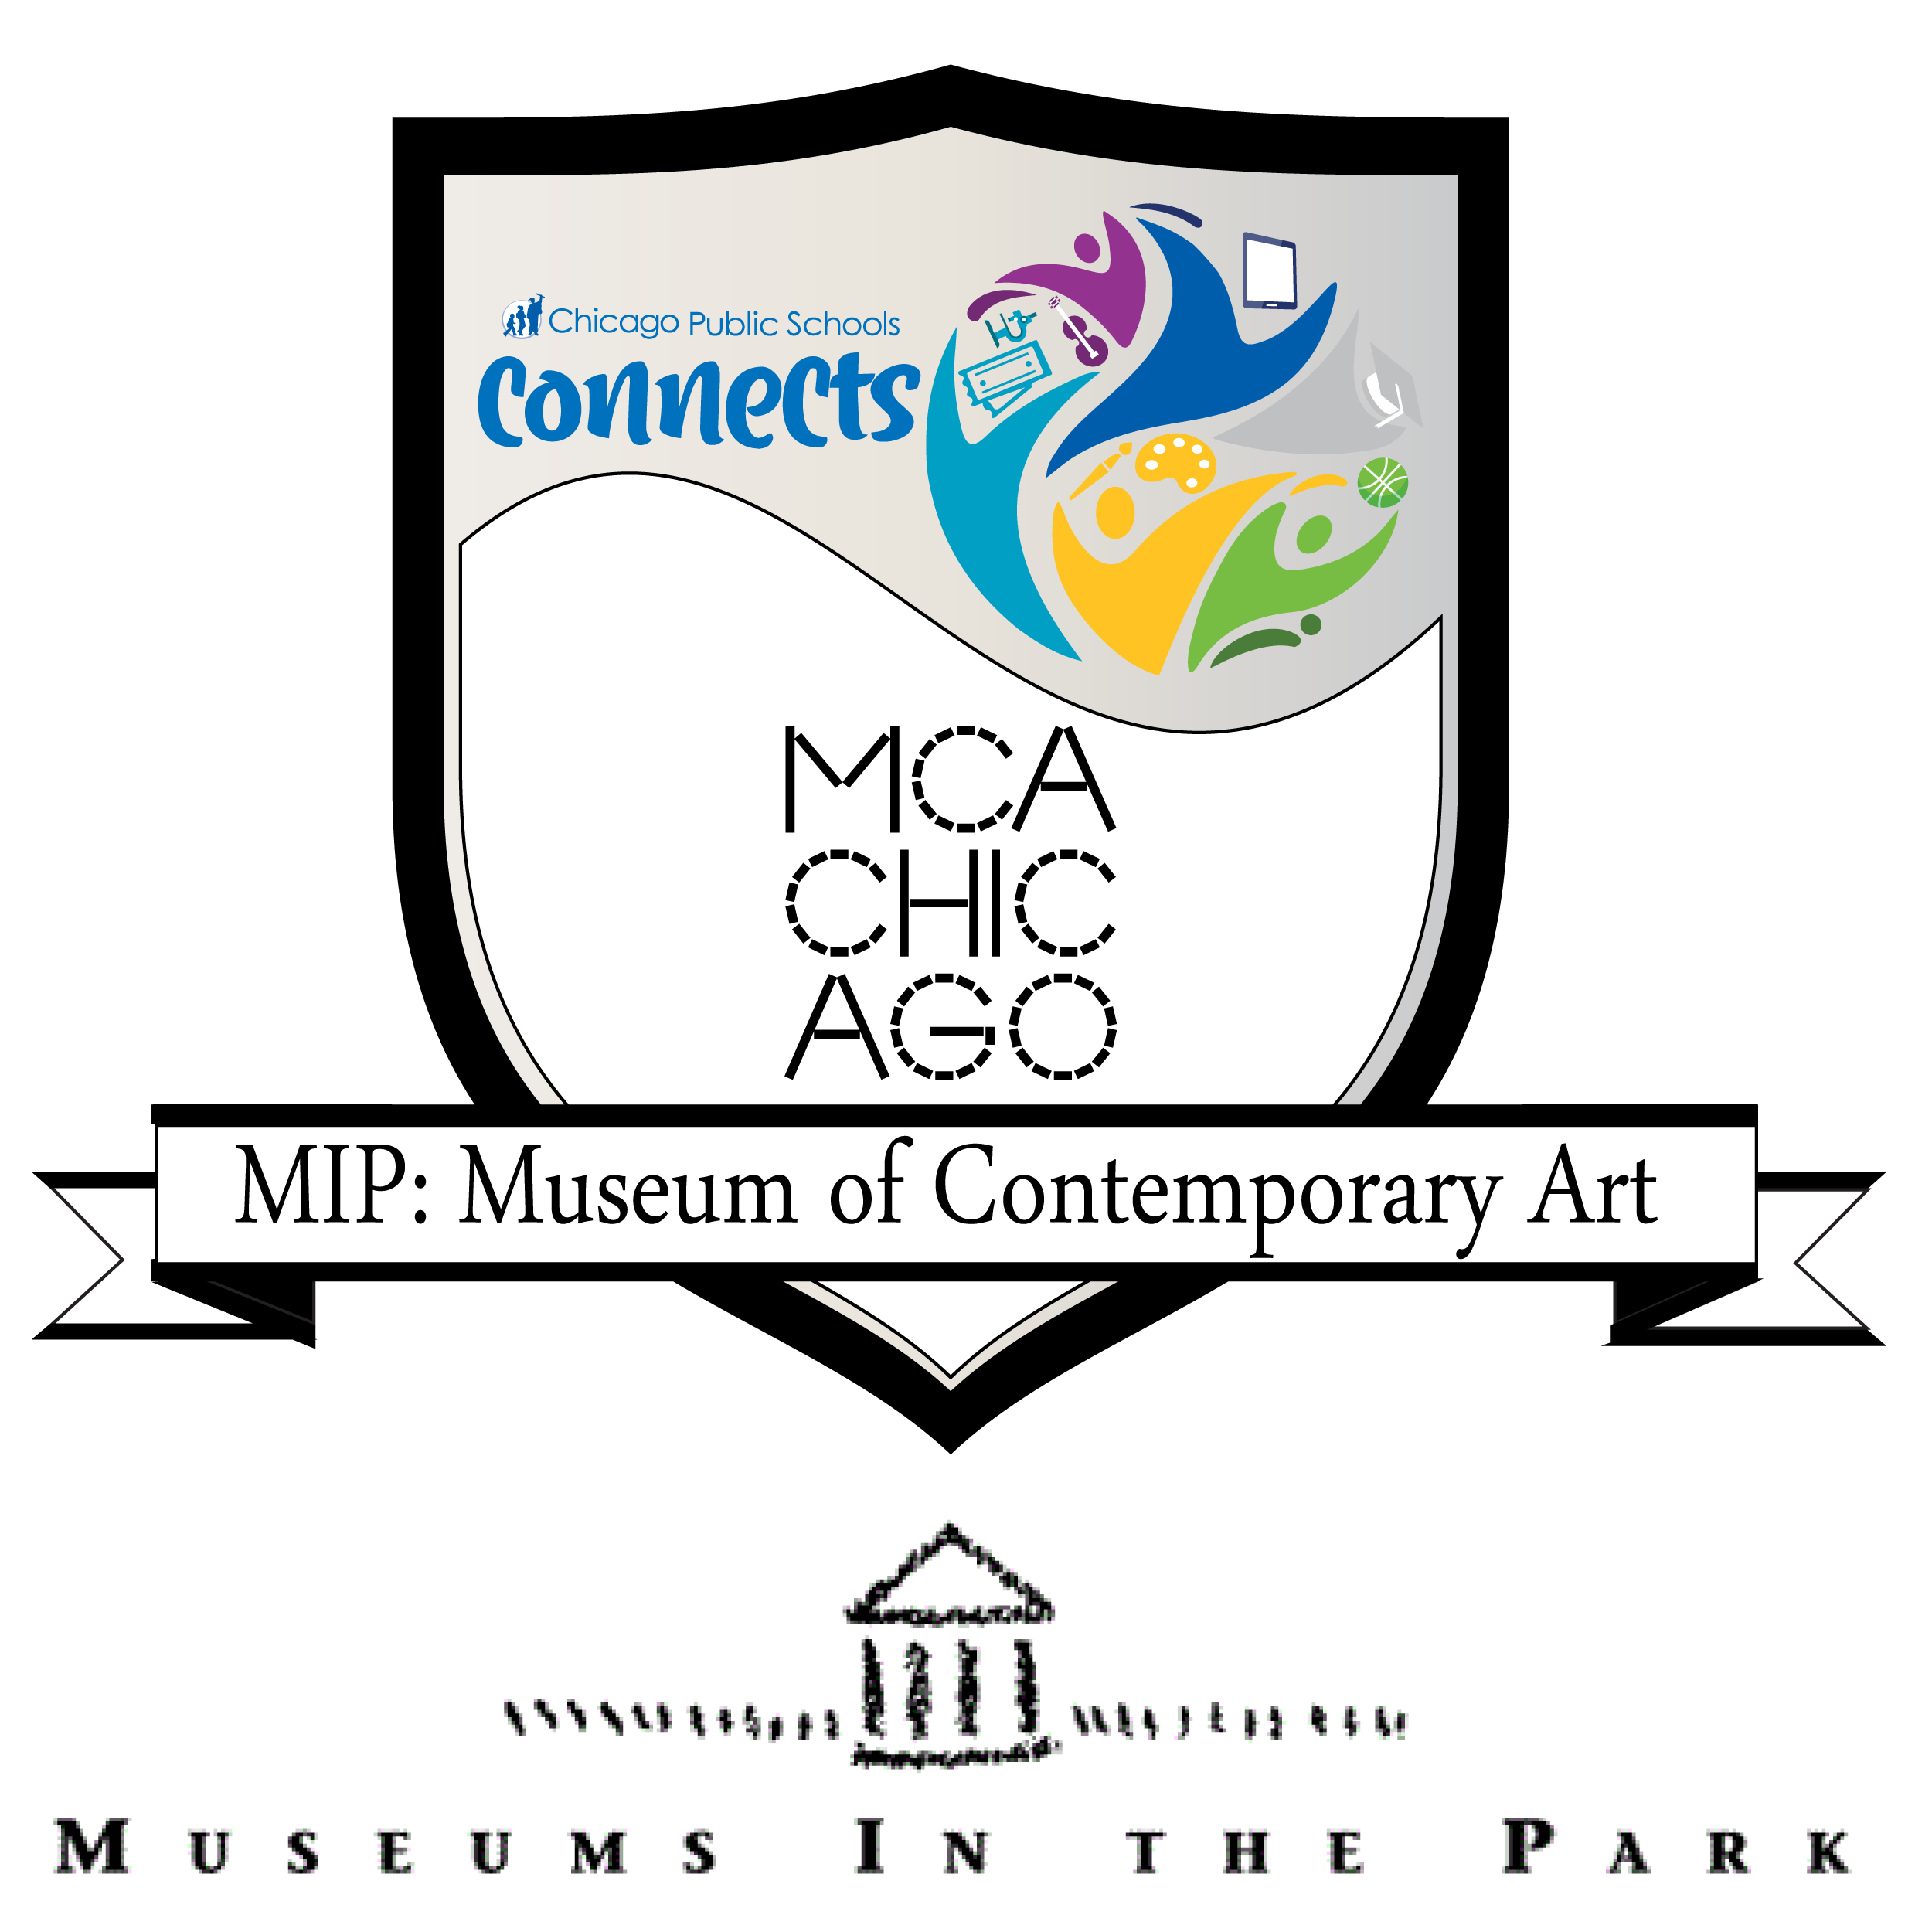 Museums in the Park: Museum of Contemporary Art